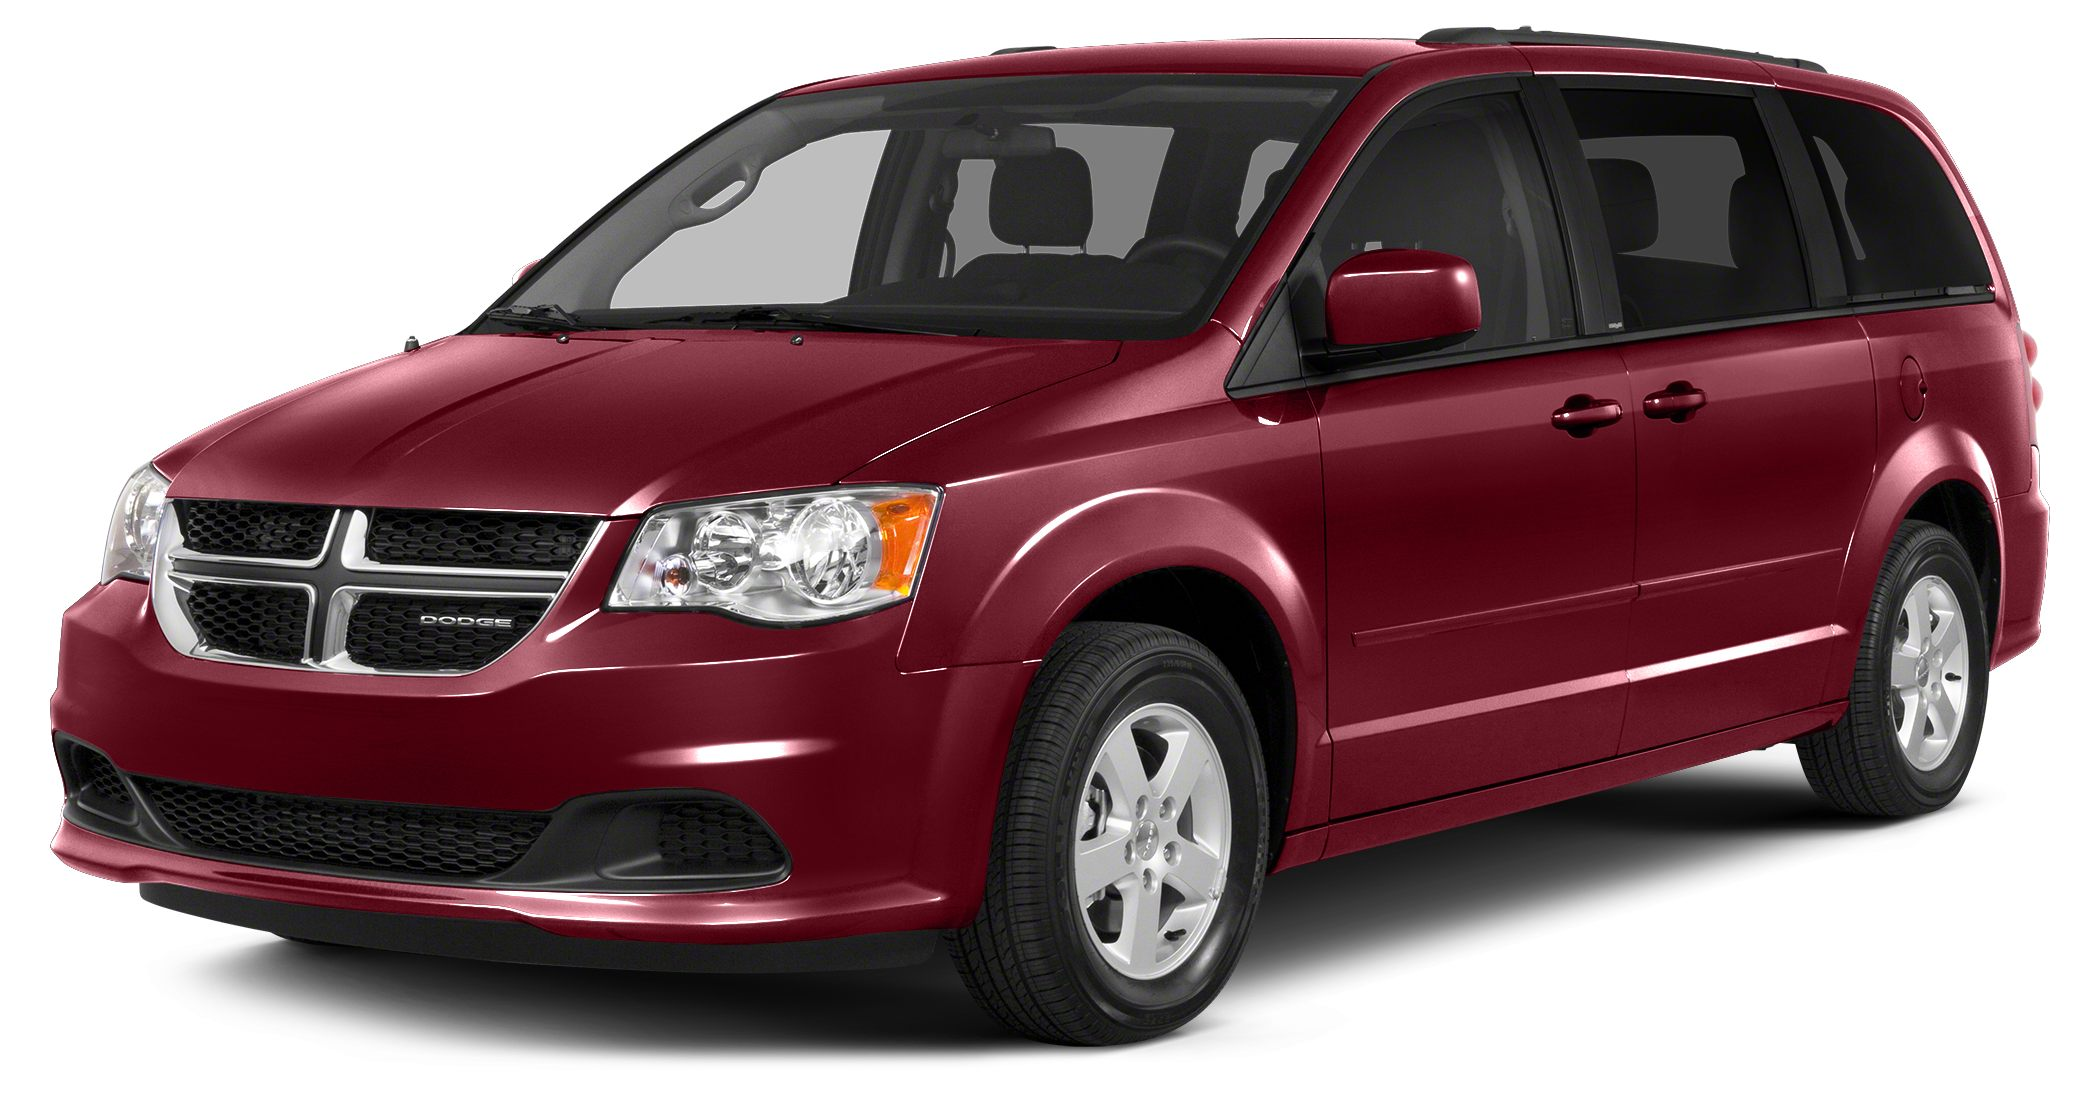 2015 Dodge Grand Caravan AVPSE Dodge Grand Caravan 2015 SE CARFAX One-Owner Clean CARFAX STOW-N